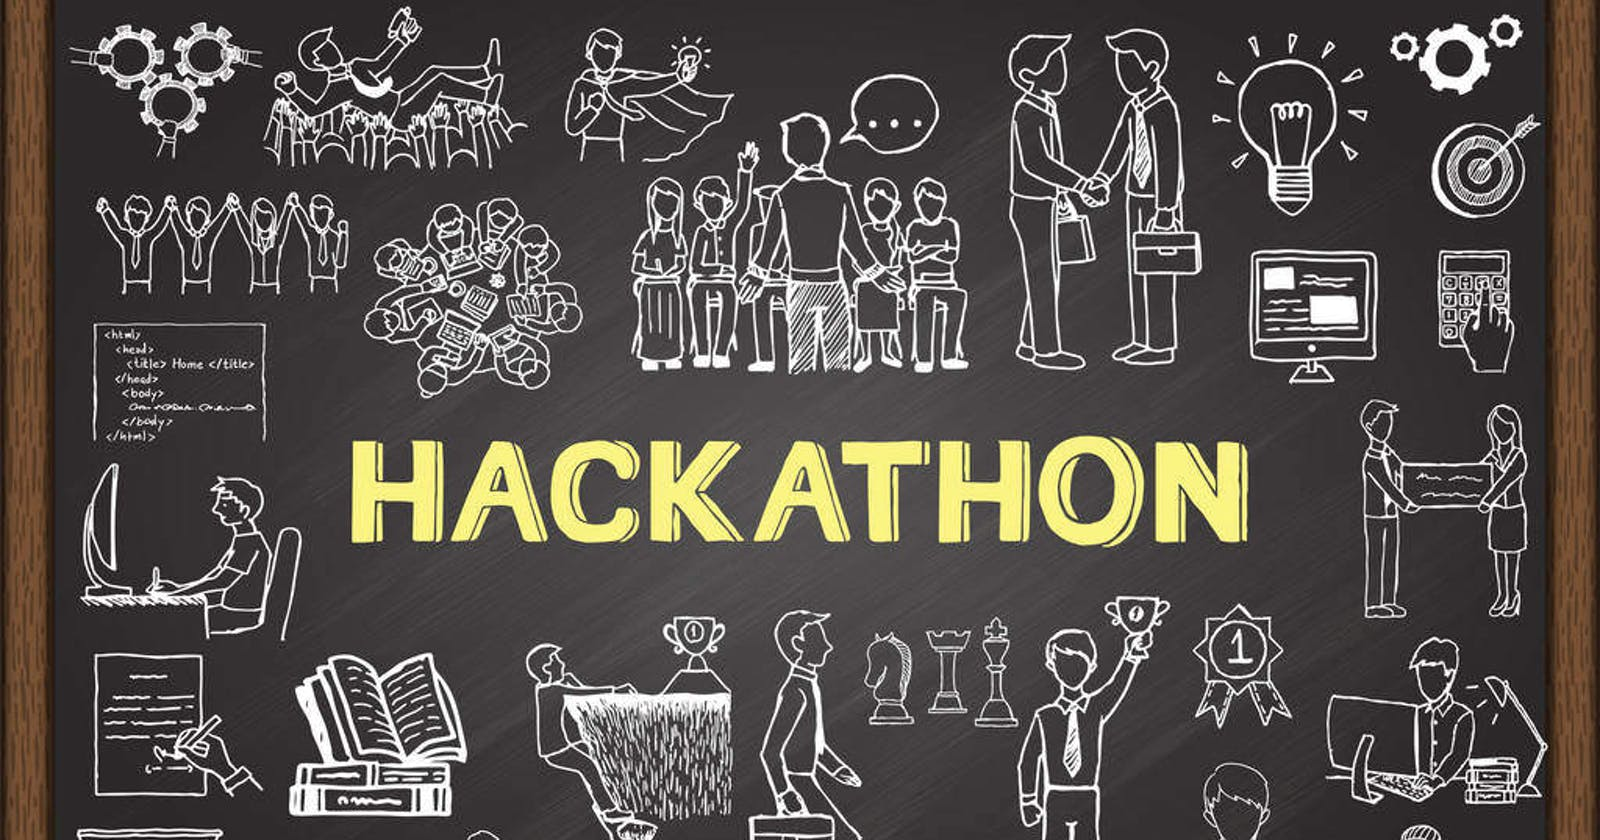 Everything you need to know about Hackathons